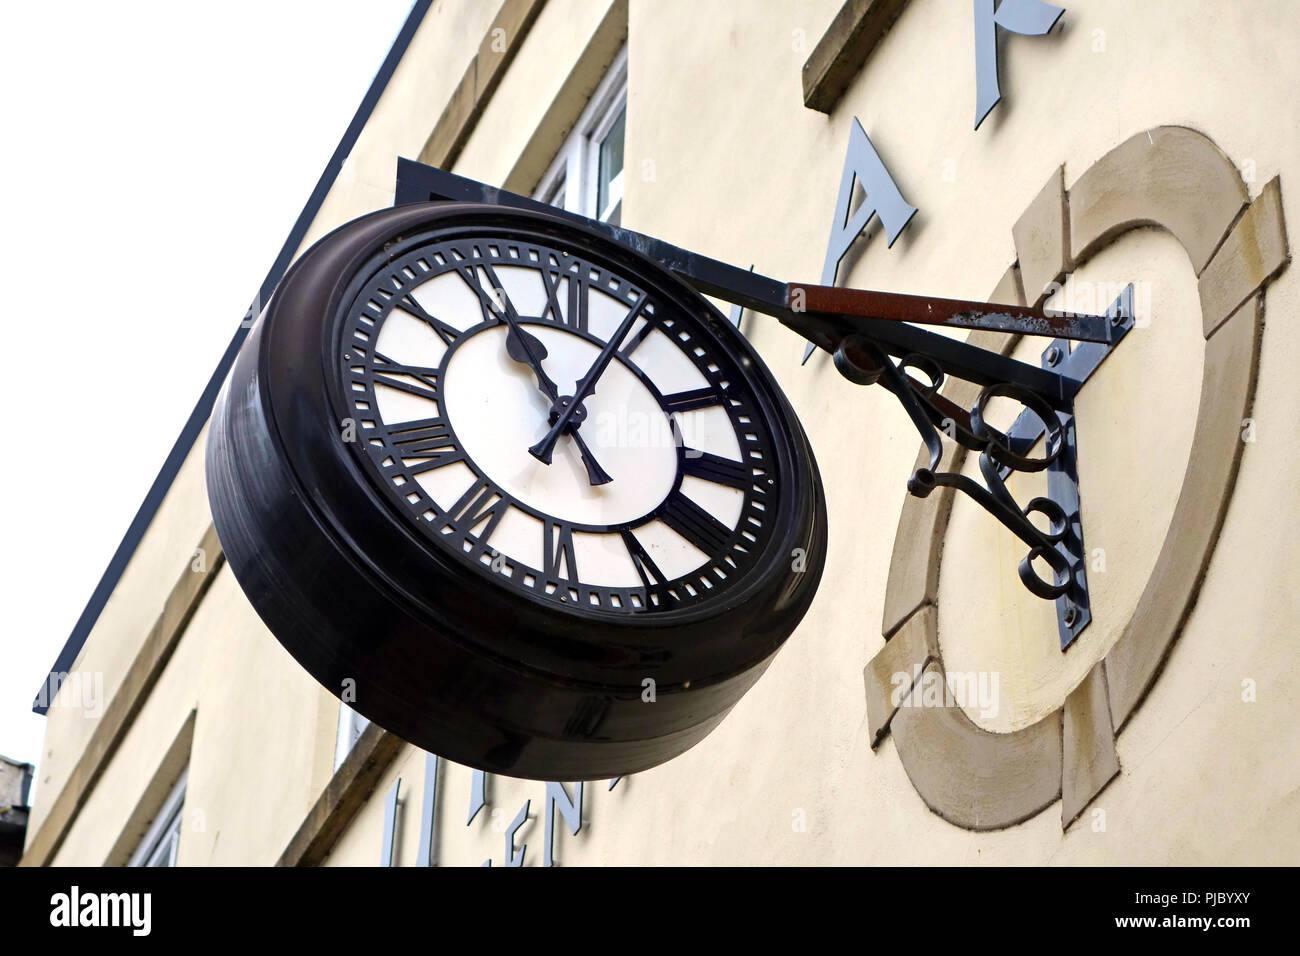 Large exterior bracket clock - Stock Image